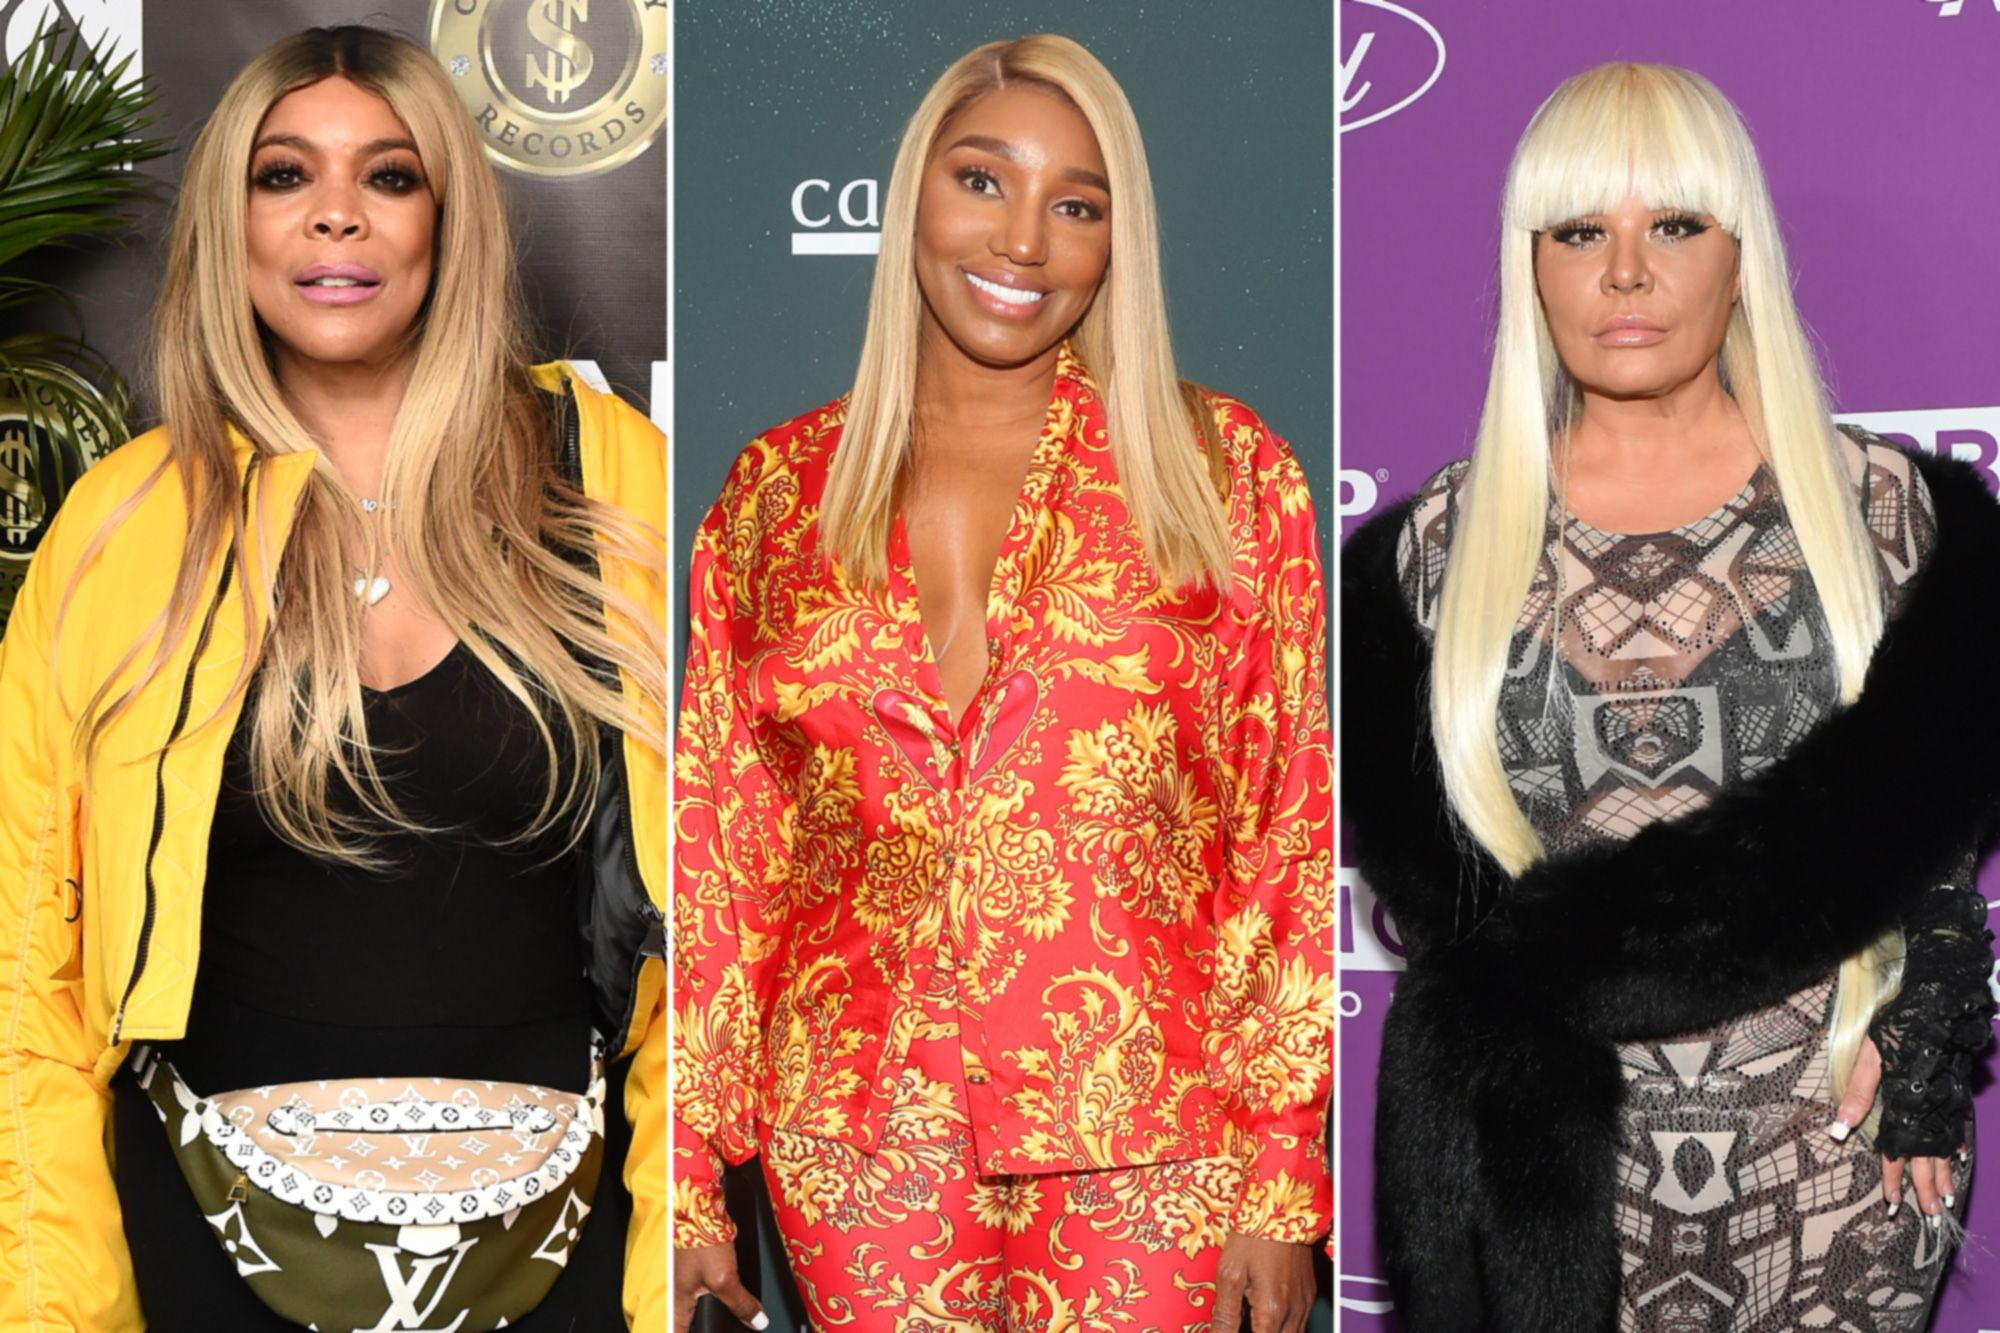 Madina Milana Does Explosive Interview Accusing Nene Leakes Of Flirting With Rick Ross, French Montana, And Women